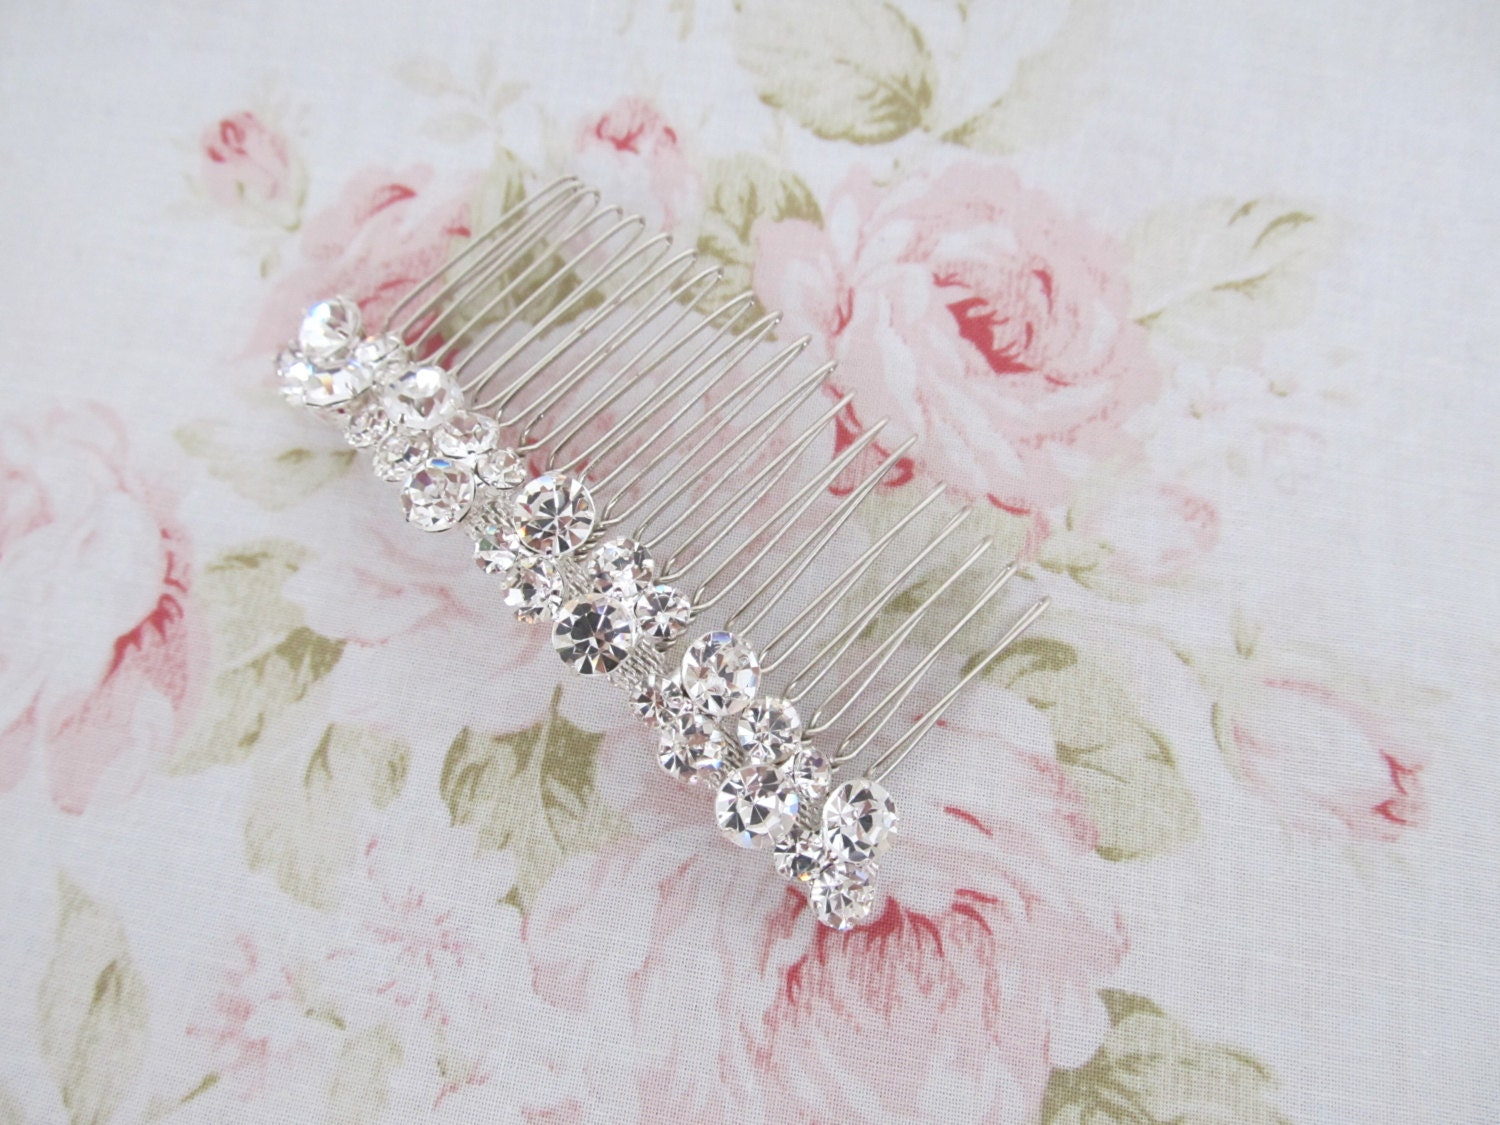 Bridal Hair Comb,Crystal Rhinestone Wedding Hair Comb,Bridal Hair Accessories,Wedding Accessories,Decorative Hair Comb,#C8